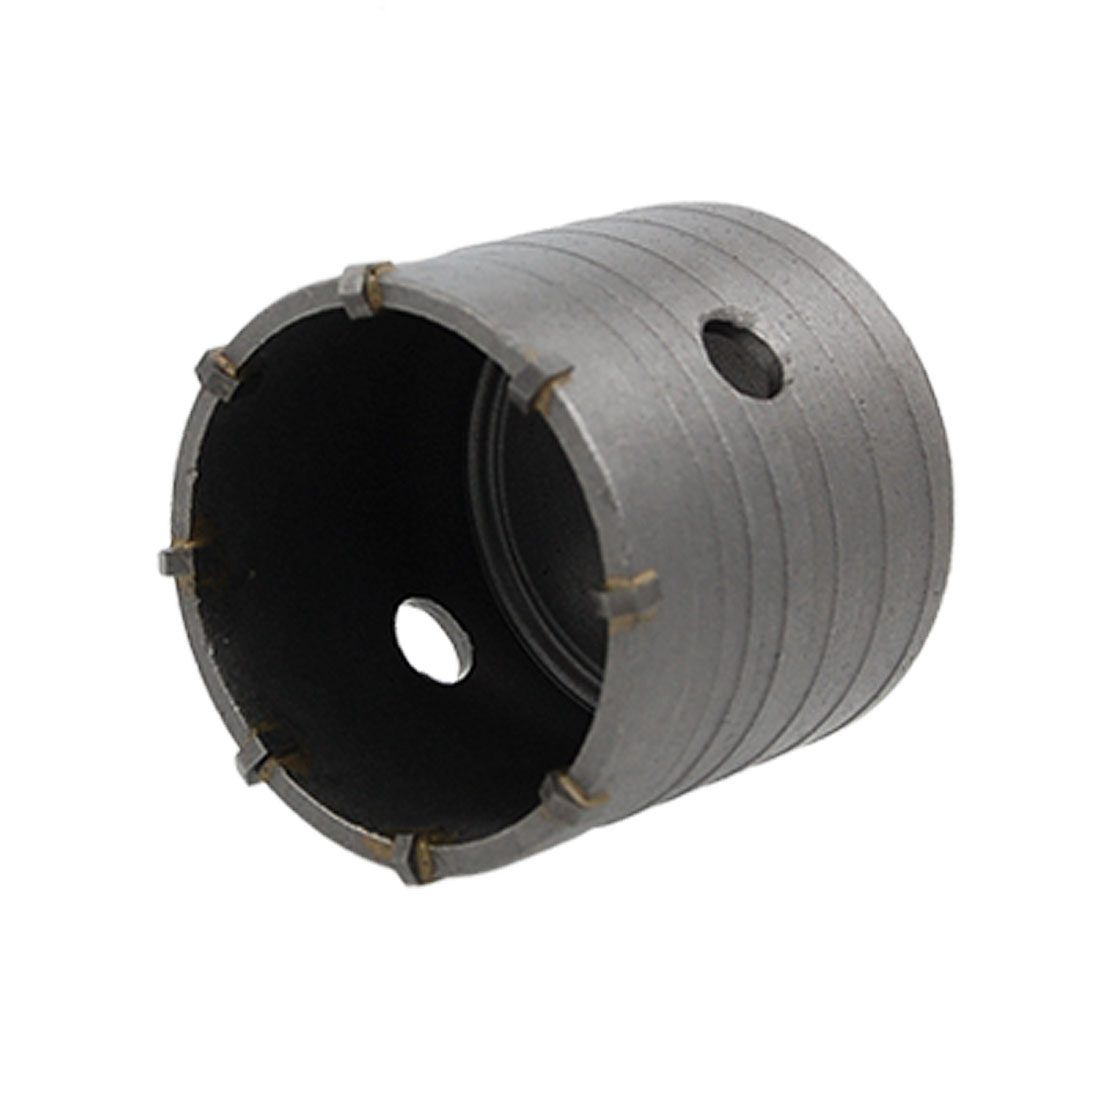 65mm Cutting Diameter Metal Hole Saw for Concrete Brick Wall